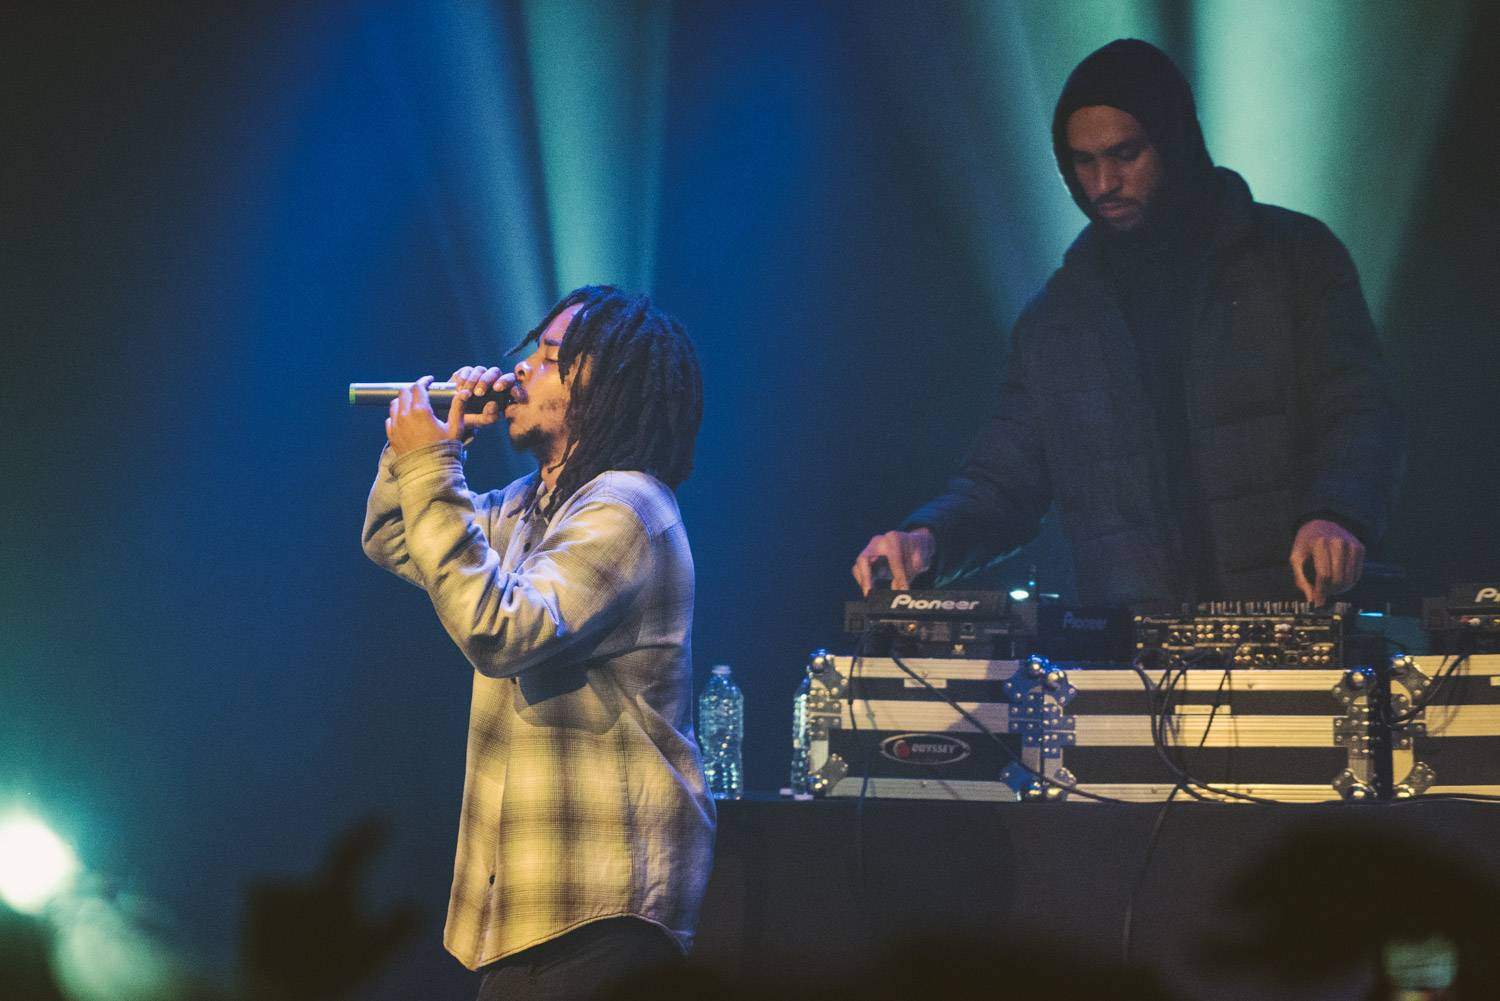 Earl Sweatshirt at the Commodore Ballroom, Vancouver, Apr 15 2019. Pavel Boiko photo.